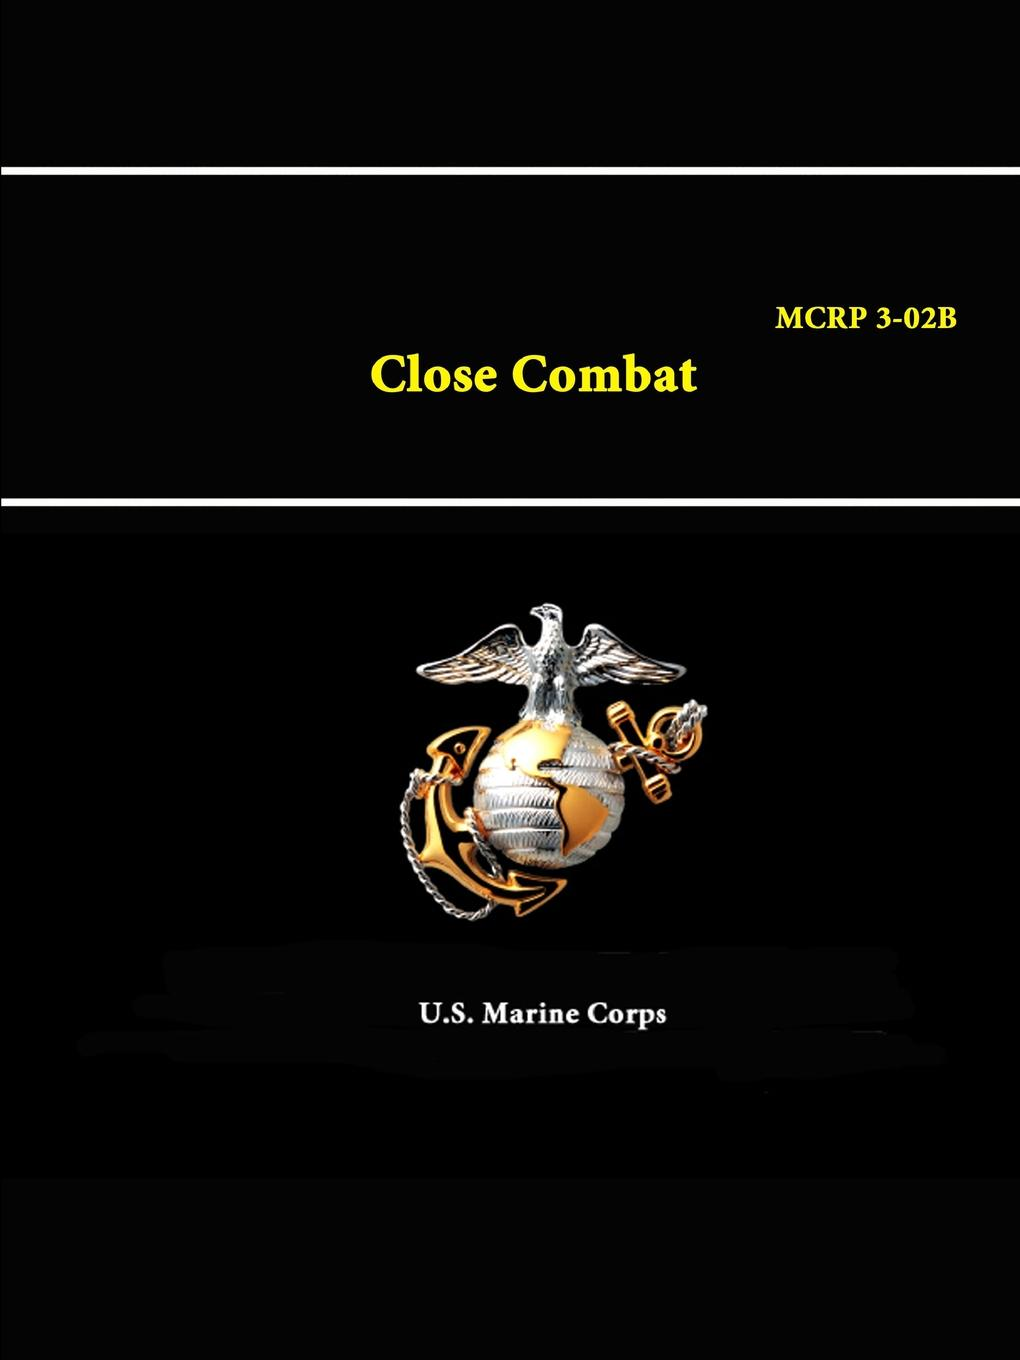 U.S. Marine Corps Close Combat - MCRP 3-02B men military tactical boots special force desert ankle combat boots safety outdoor shoes plus new ultralight army boot